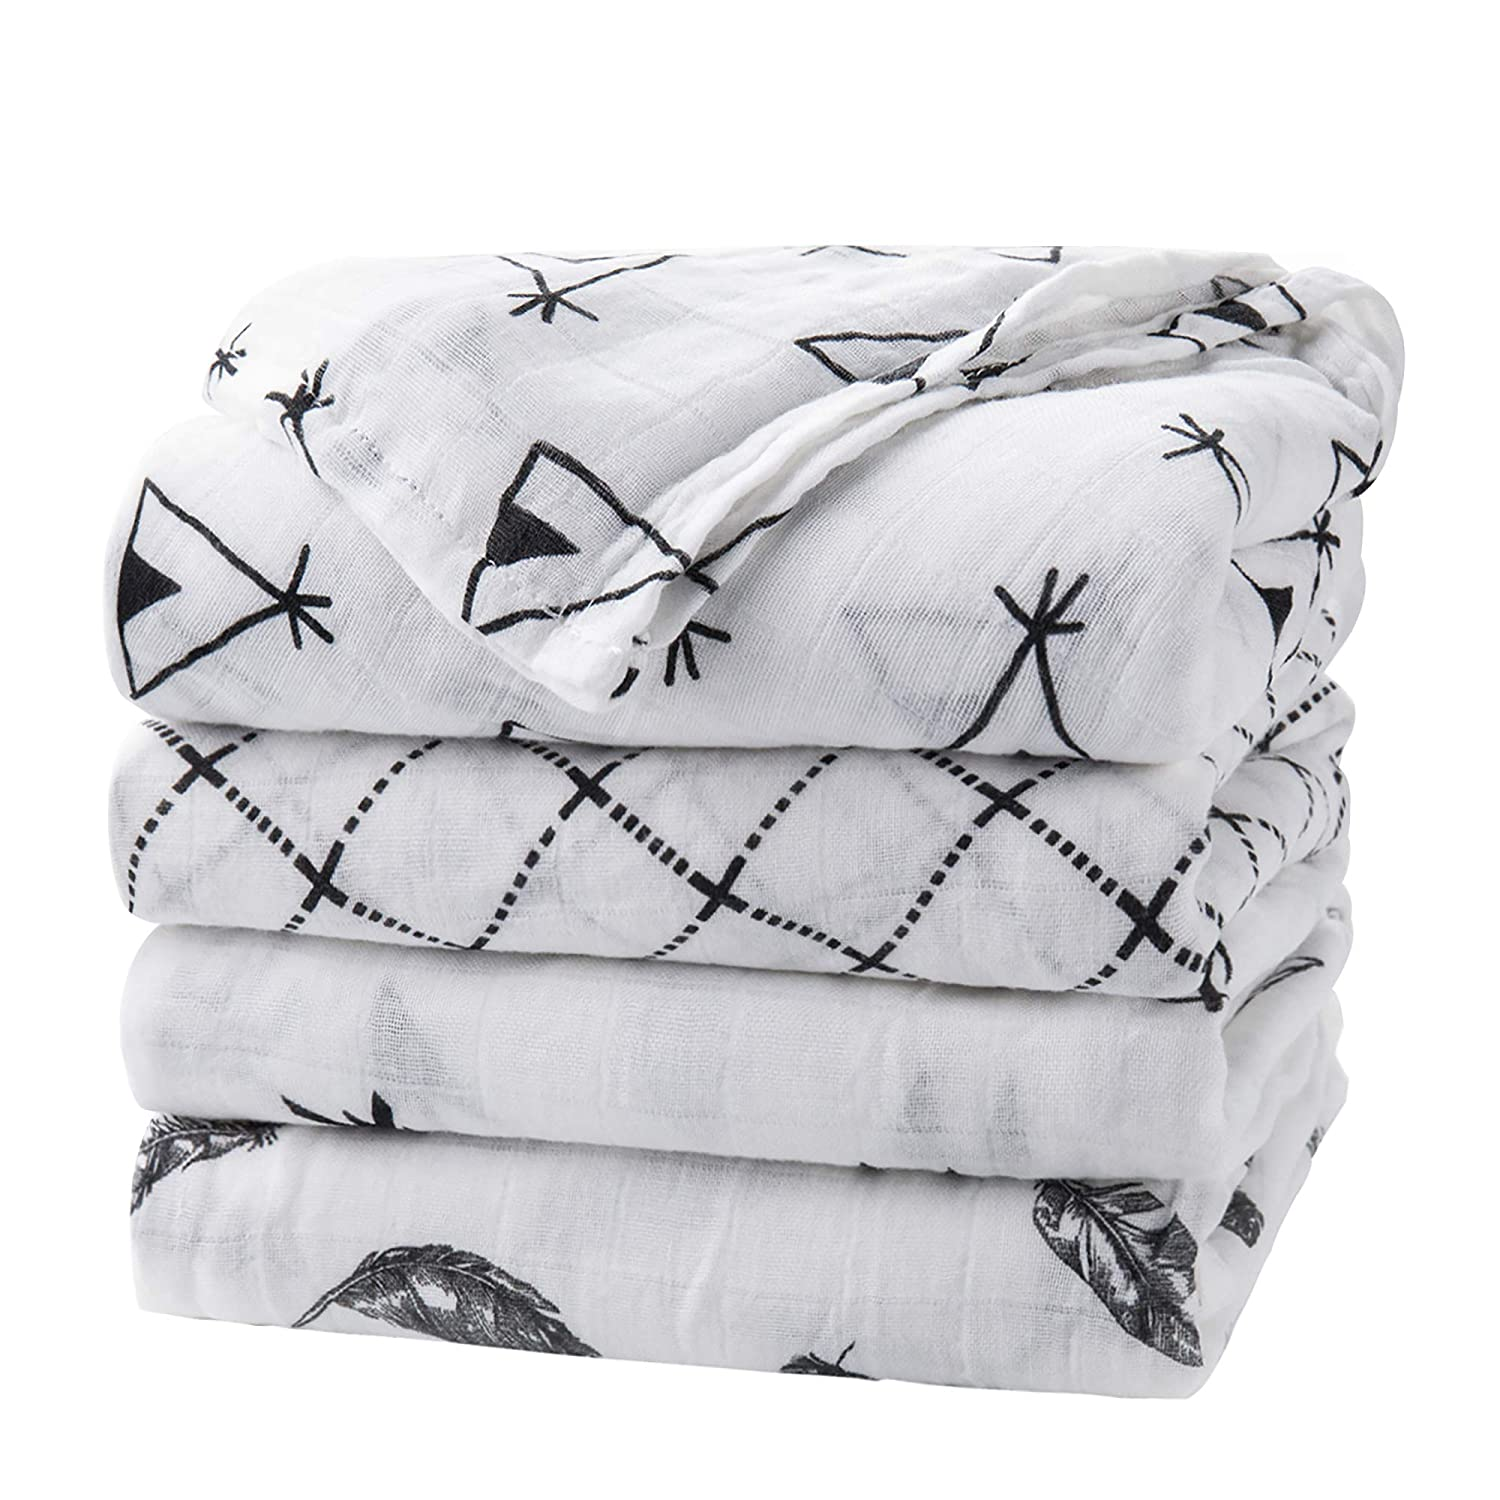 upsimples Baby Swaddle Blanket Unisex Swaddle Wrap Soft Silky Bamboo Muslin Swaddle Blankets Neutral Receiving Blanket for Boys and Girls, Large 46 x 45 inches, Set of 4-Arrow/Feather/Tent/Crisscross: Baby